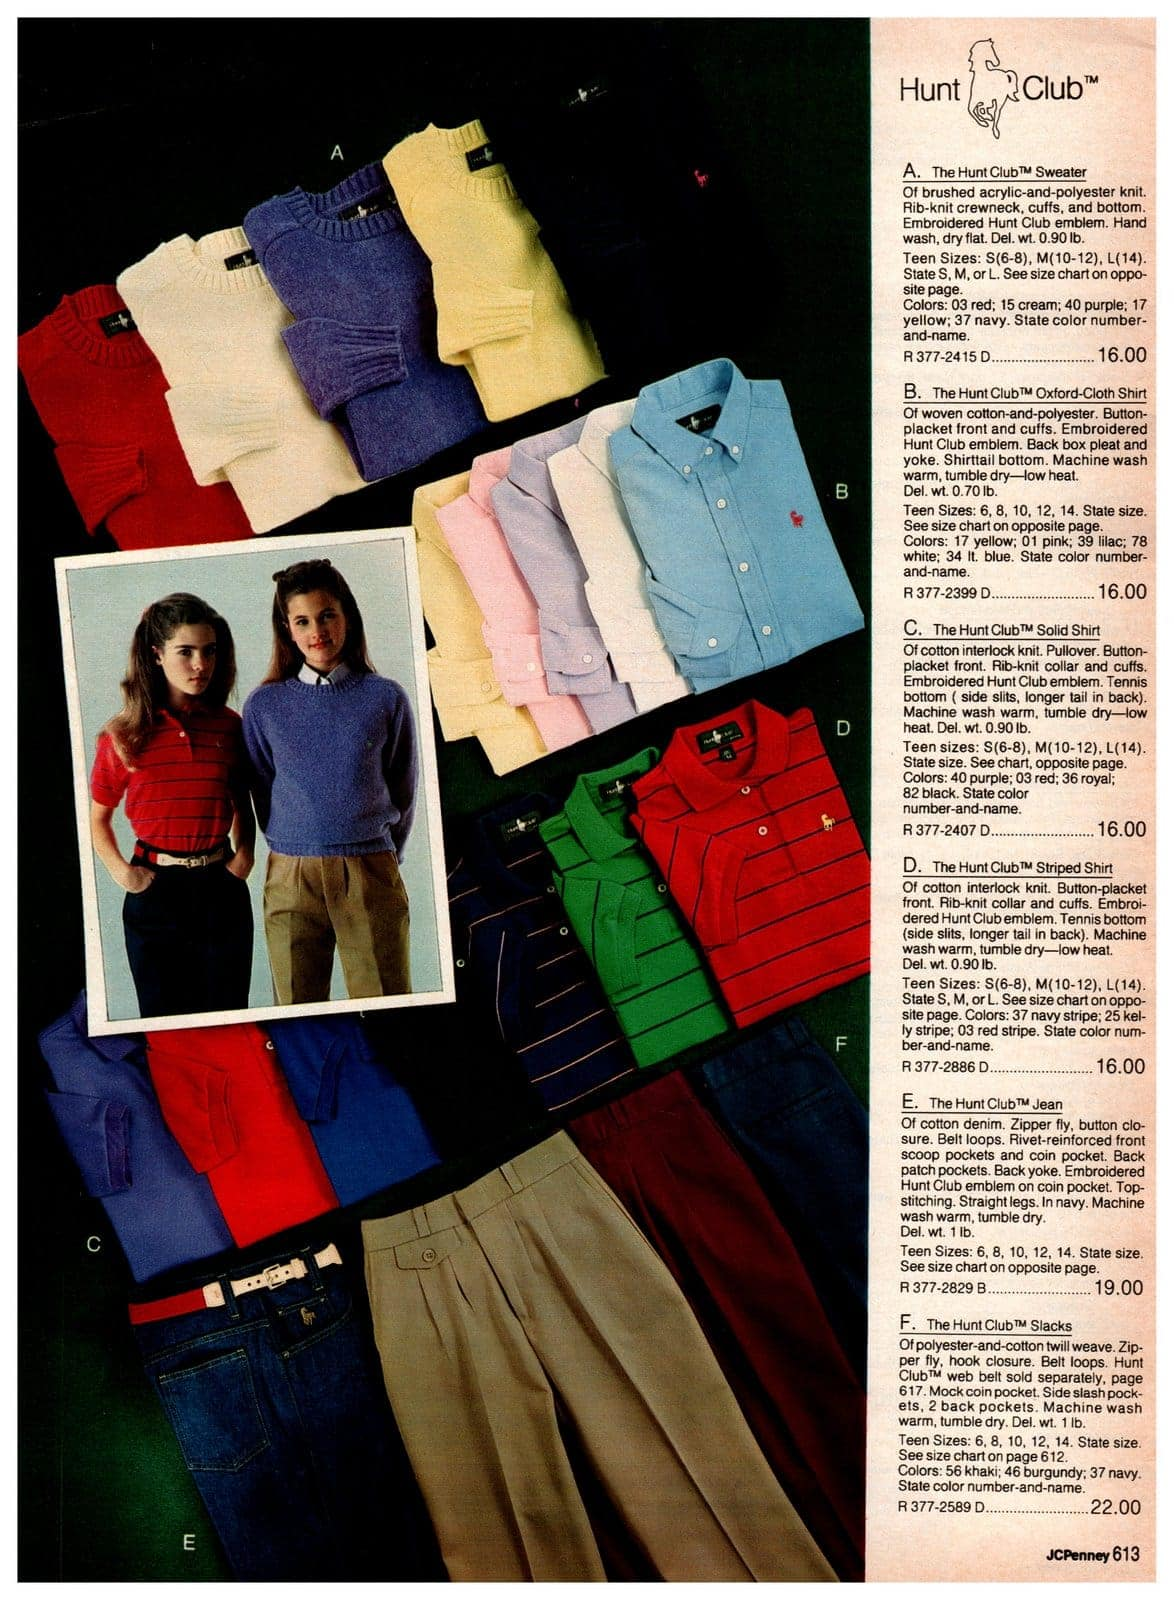 Fashionable '80s clothes for girls in the 1983 JC Penney